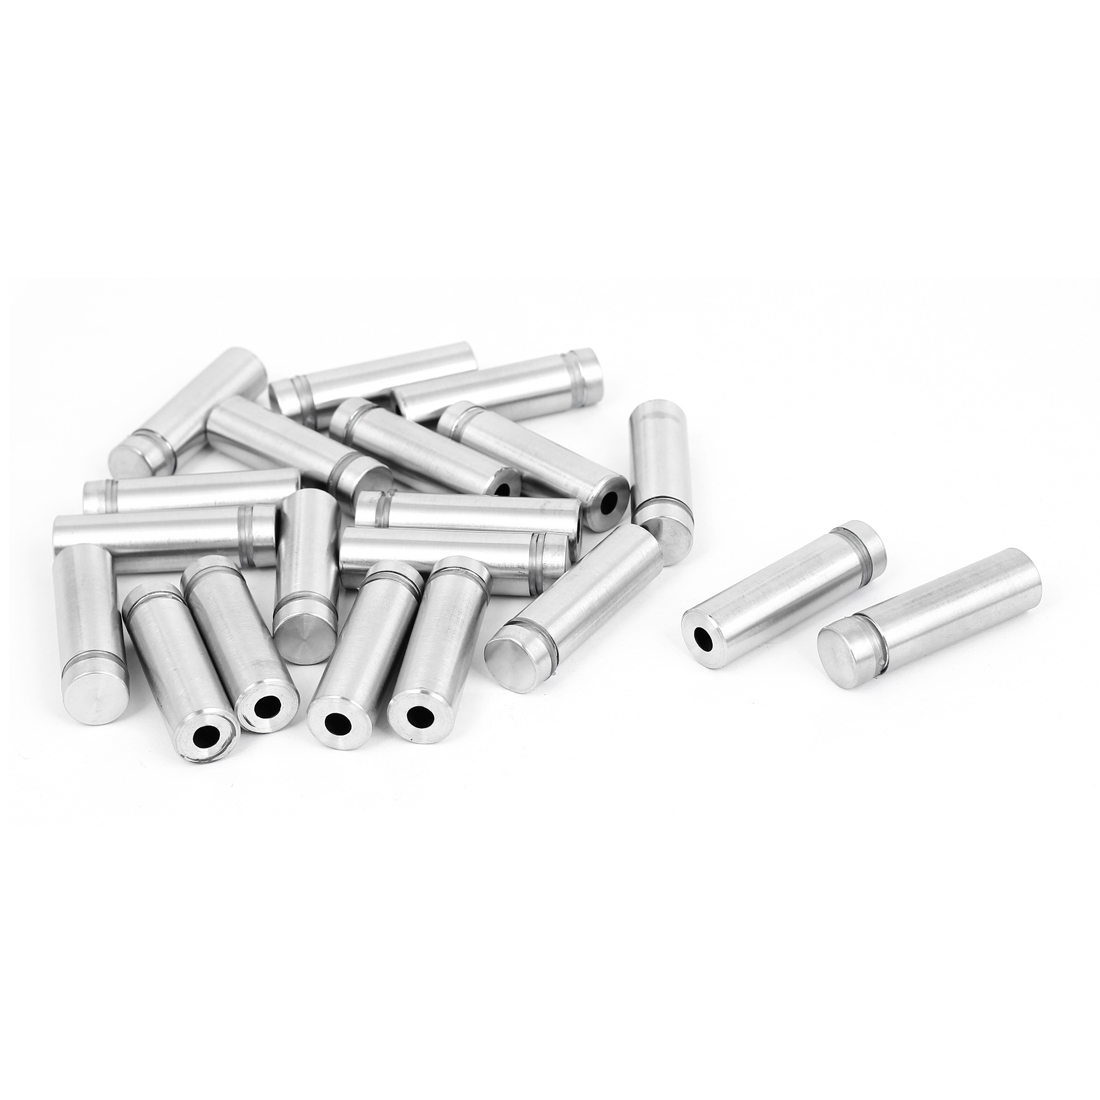 12mm x 40mm Stainless Steel Advertising Frameless Glass Standoff Pins 20pcs